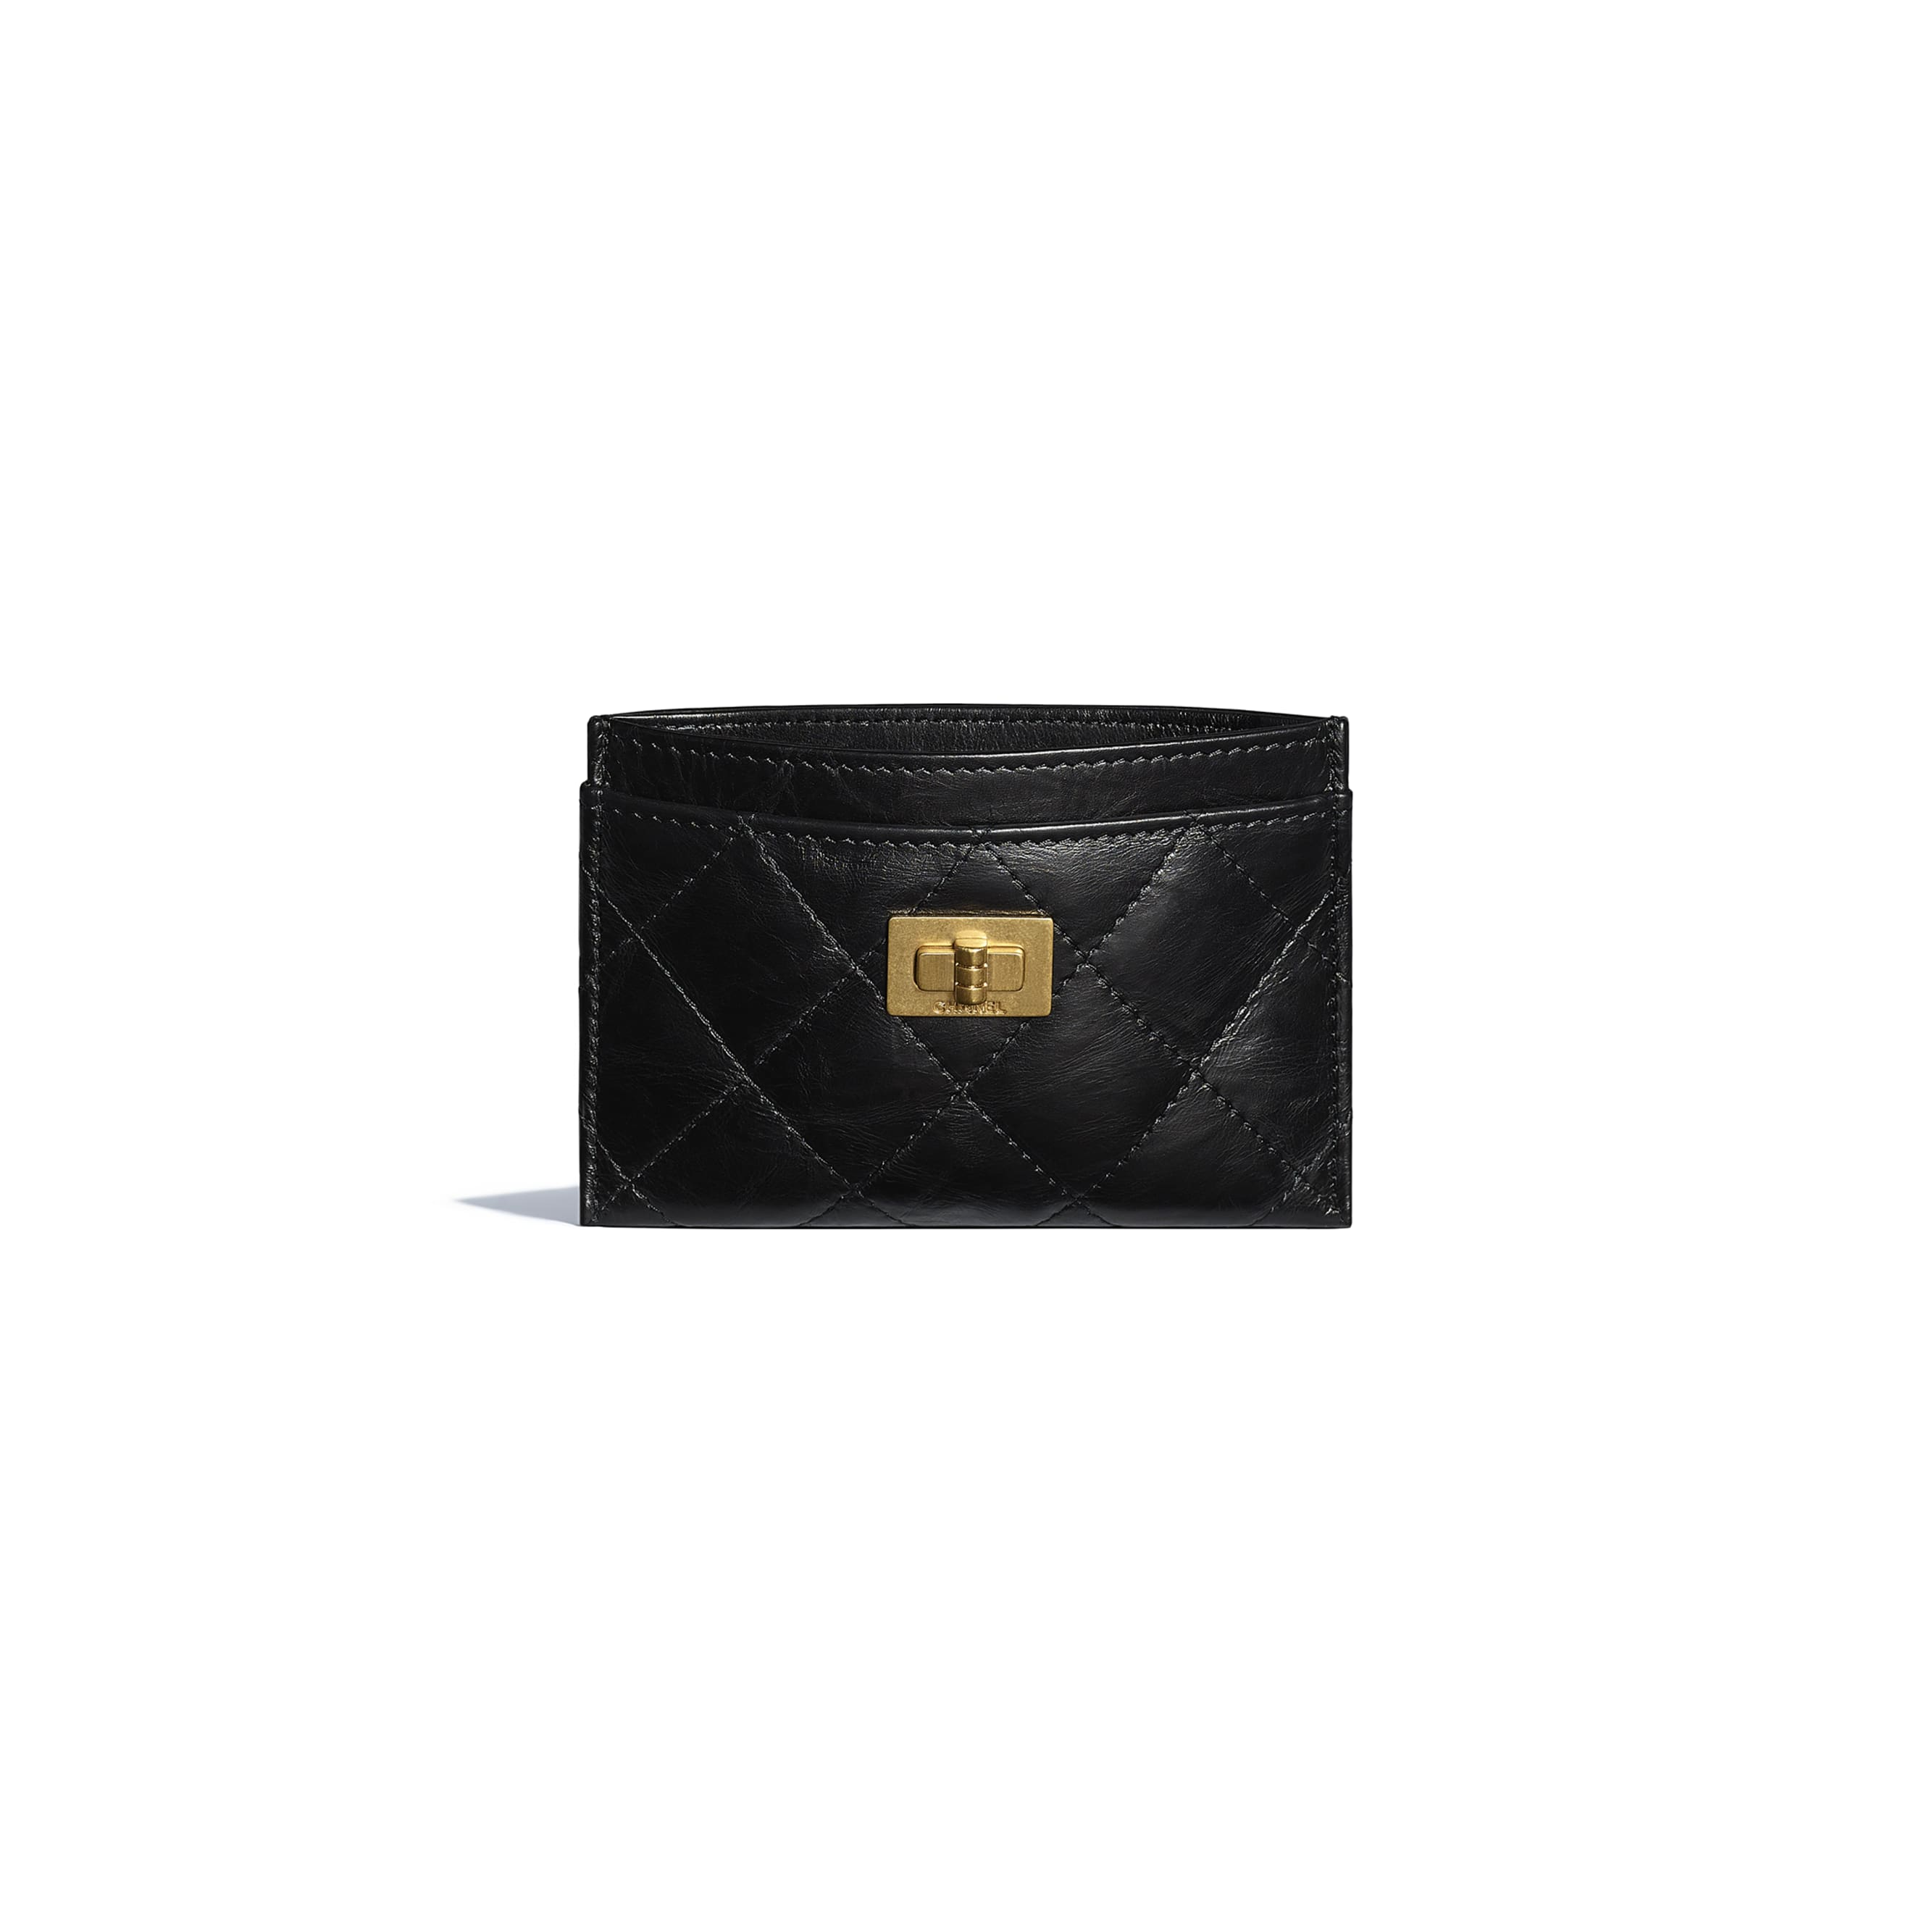 2.55 Card Holder - Black - Aged Calfskin & Gold-Tone Metal - CHANEL - Other view - see standard sized version